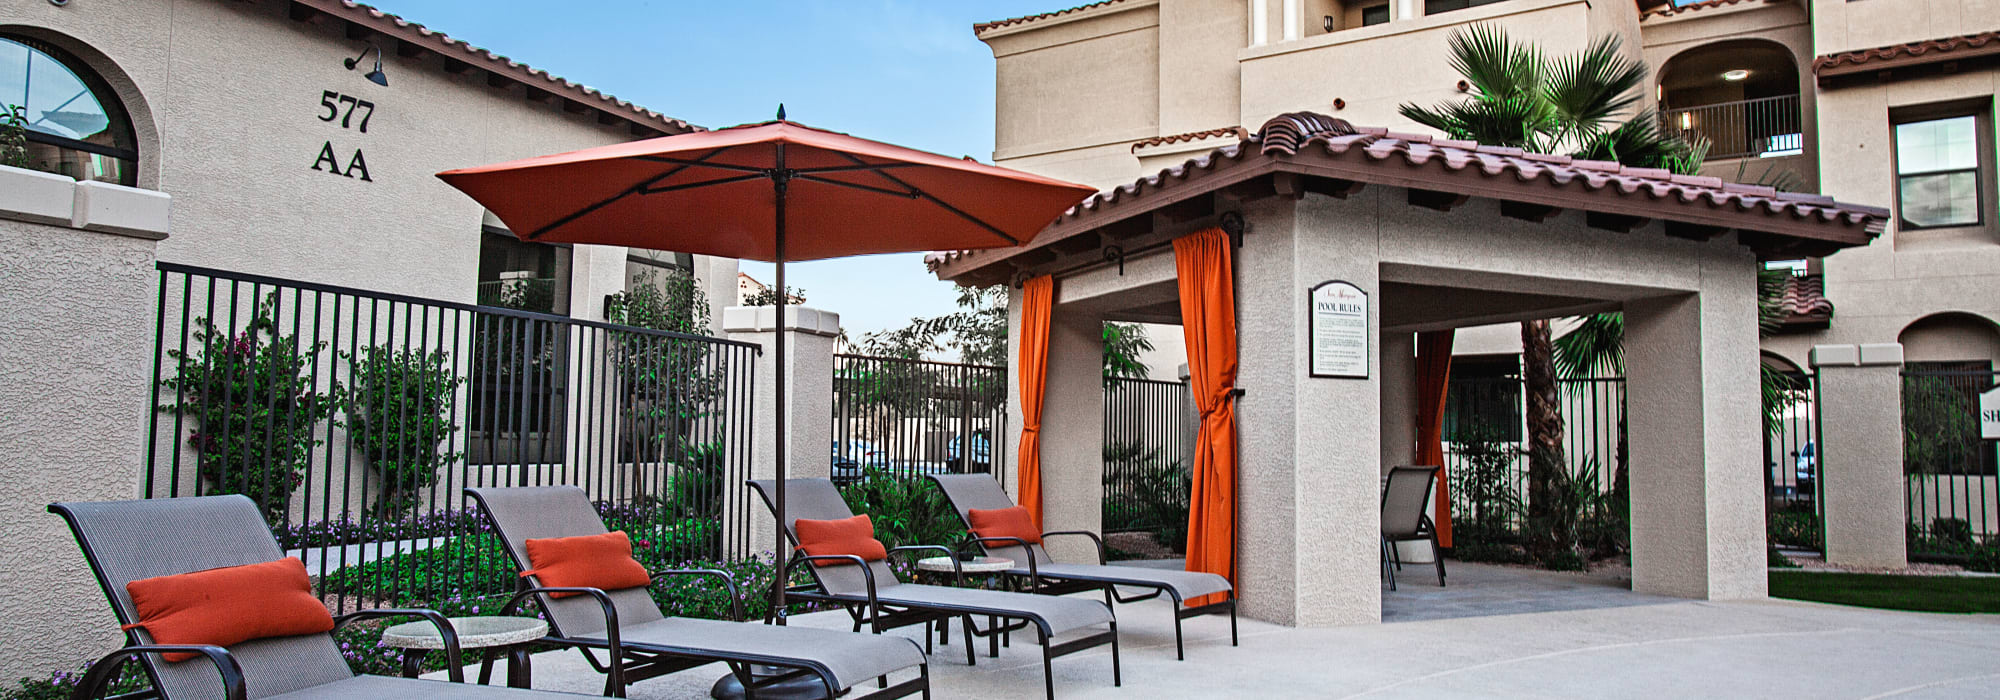 Chaise lounge chairs and covered cabanas near the pool at San Marquis in Tempe, Arizona